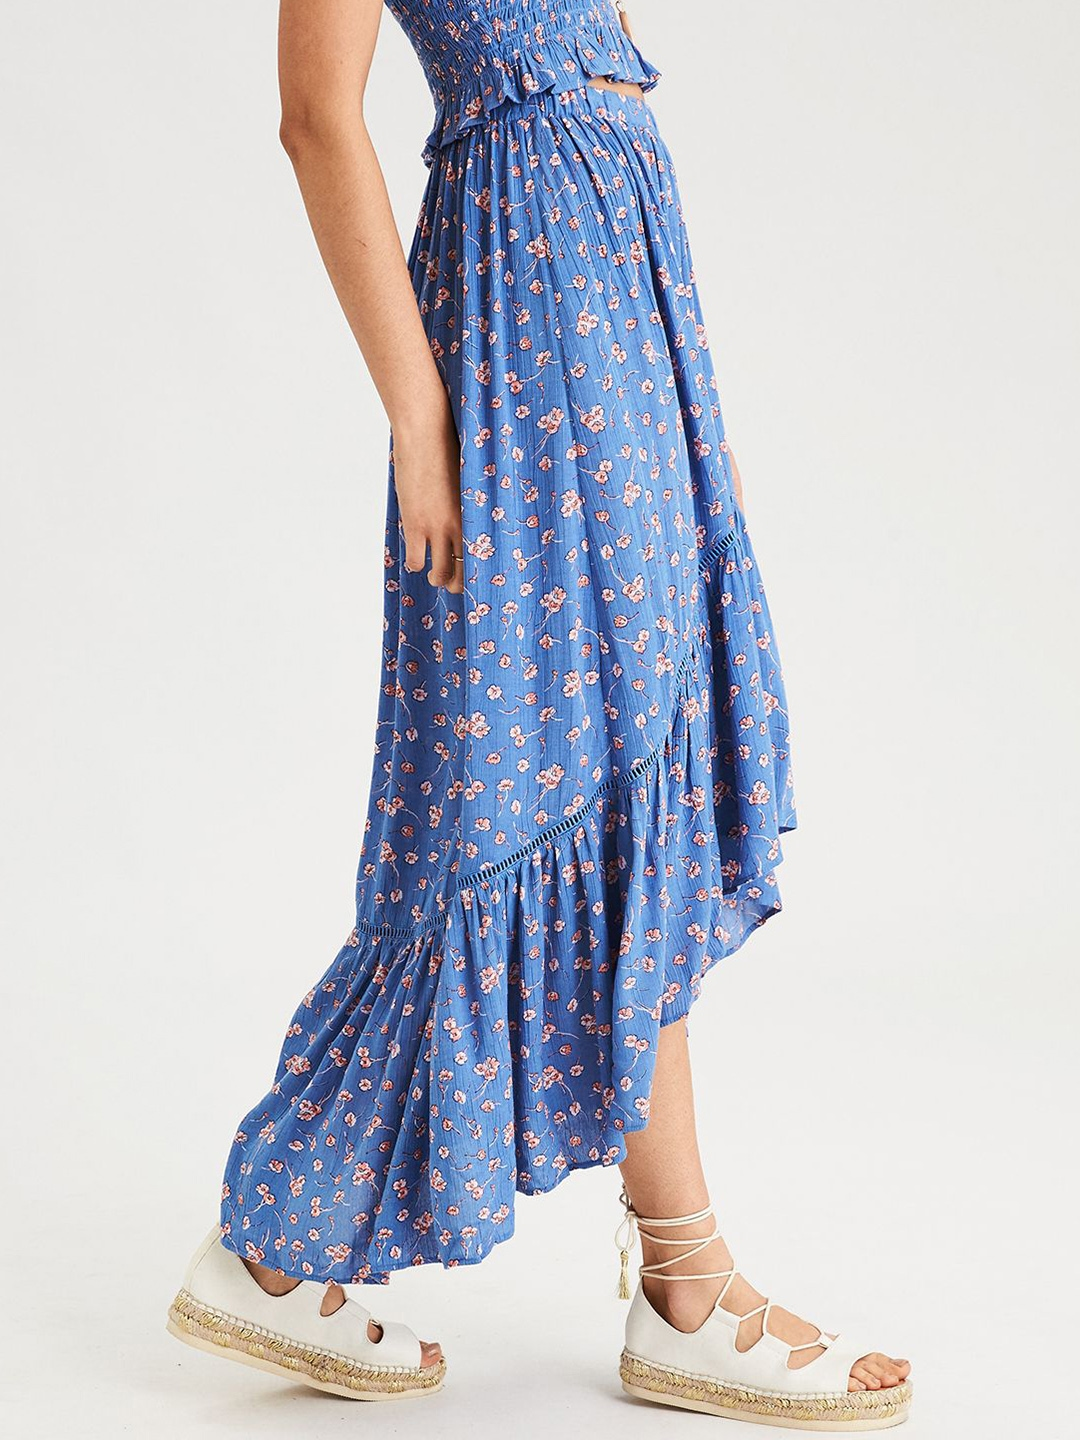 79248ca5b Buy AMERICAN EAGLE OUTFITTERS Women Blue Floral High Low Skirt ...